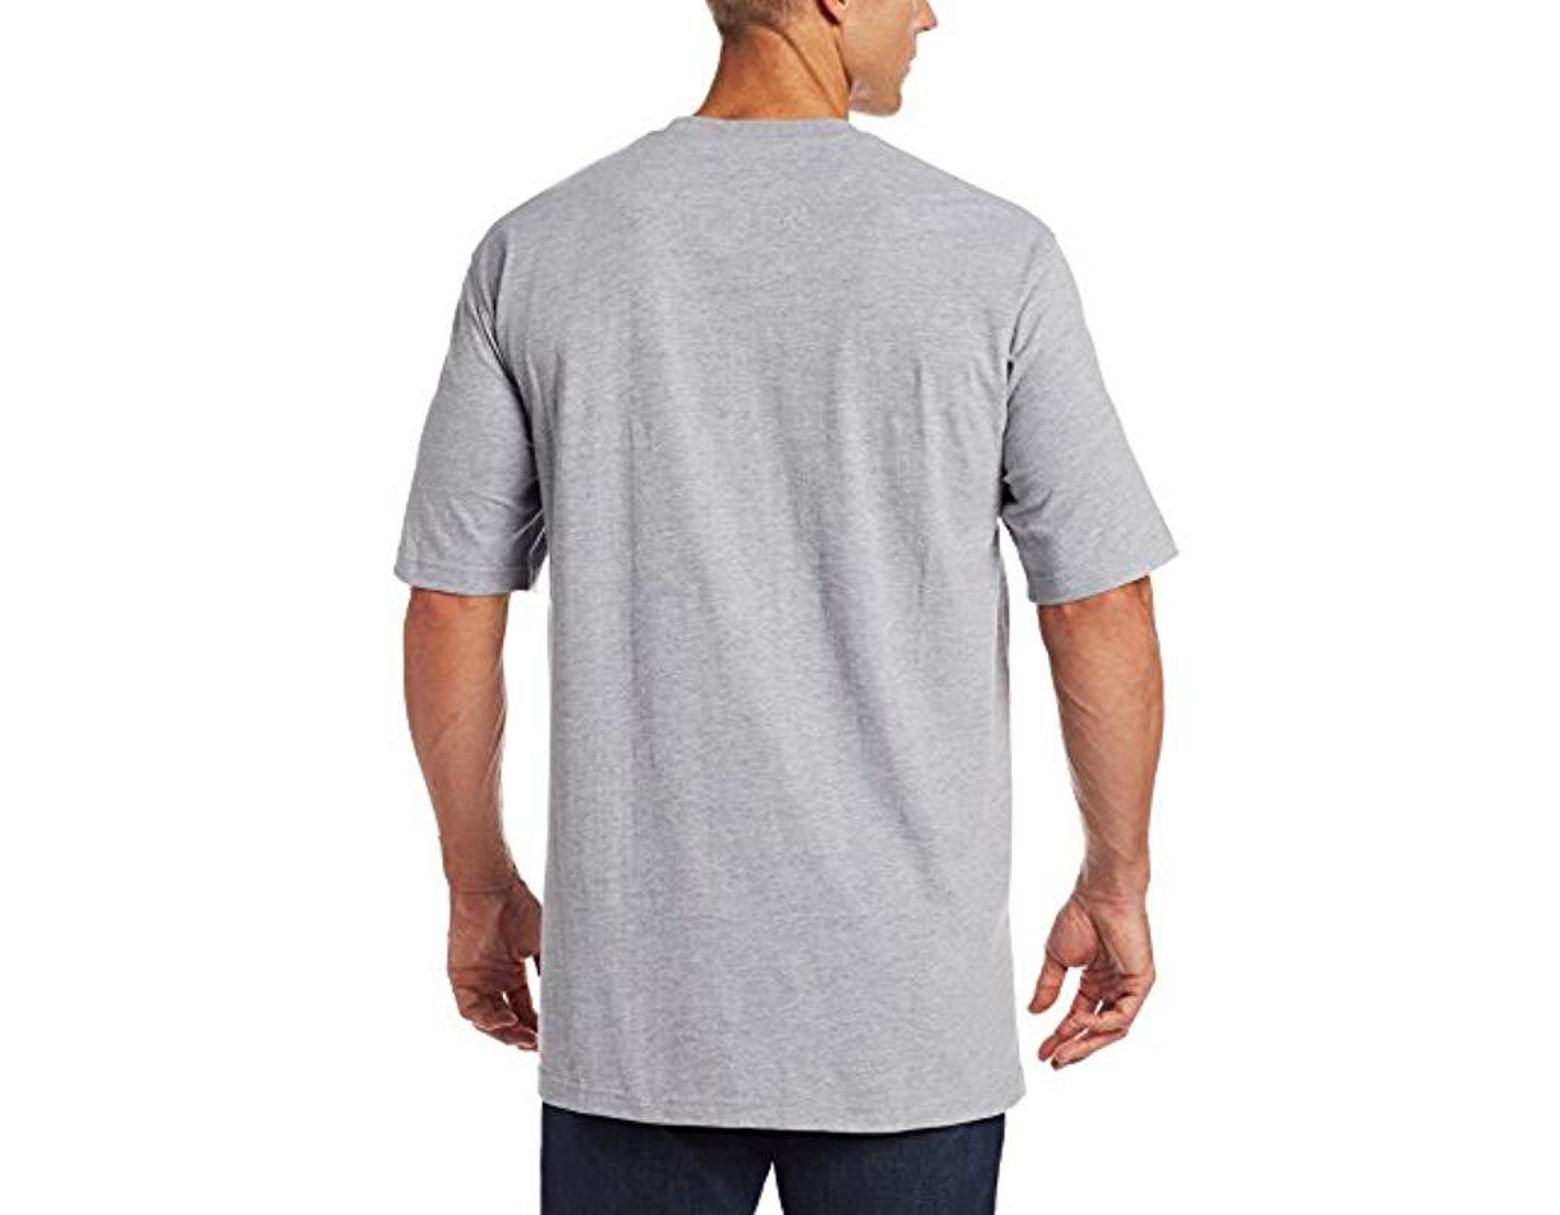 a3404306a67b Wrangler RIGGS Workwear Big & Tall Pocket T-shirt in Gray for Men - Save  17% - Lyst